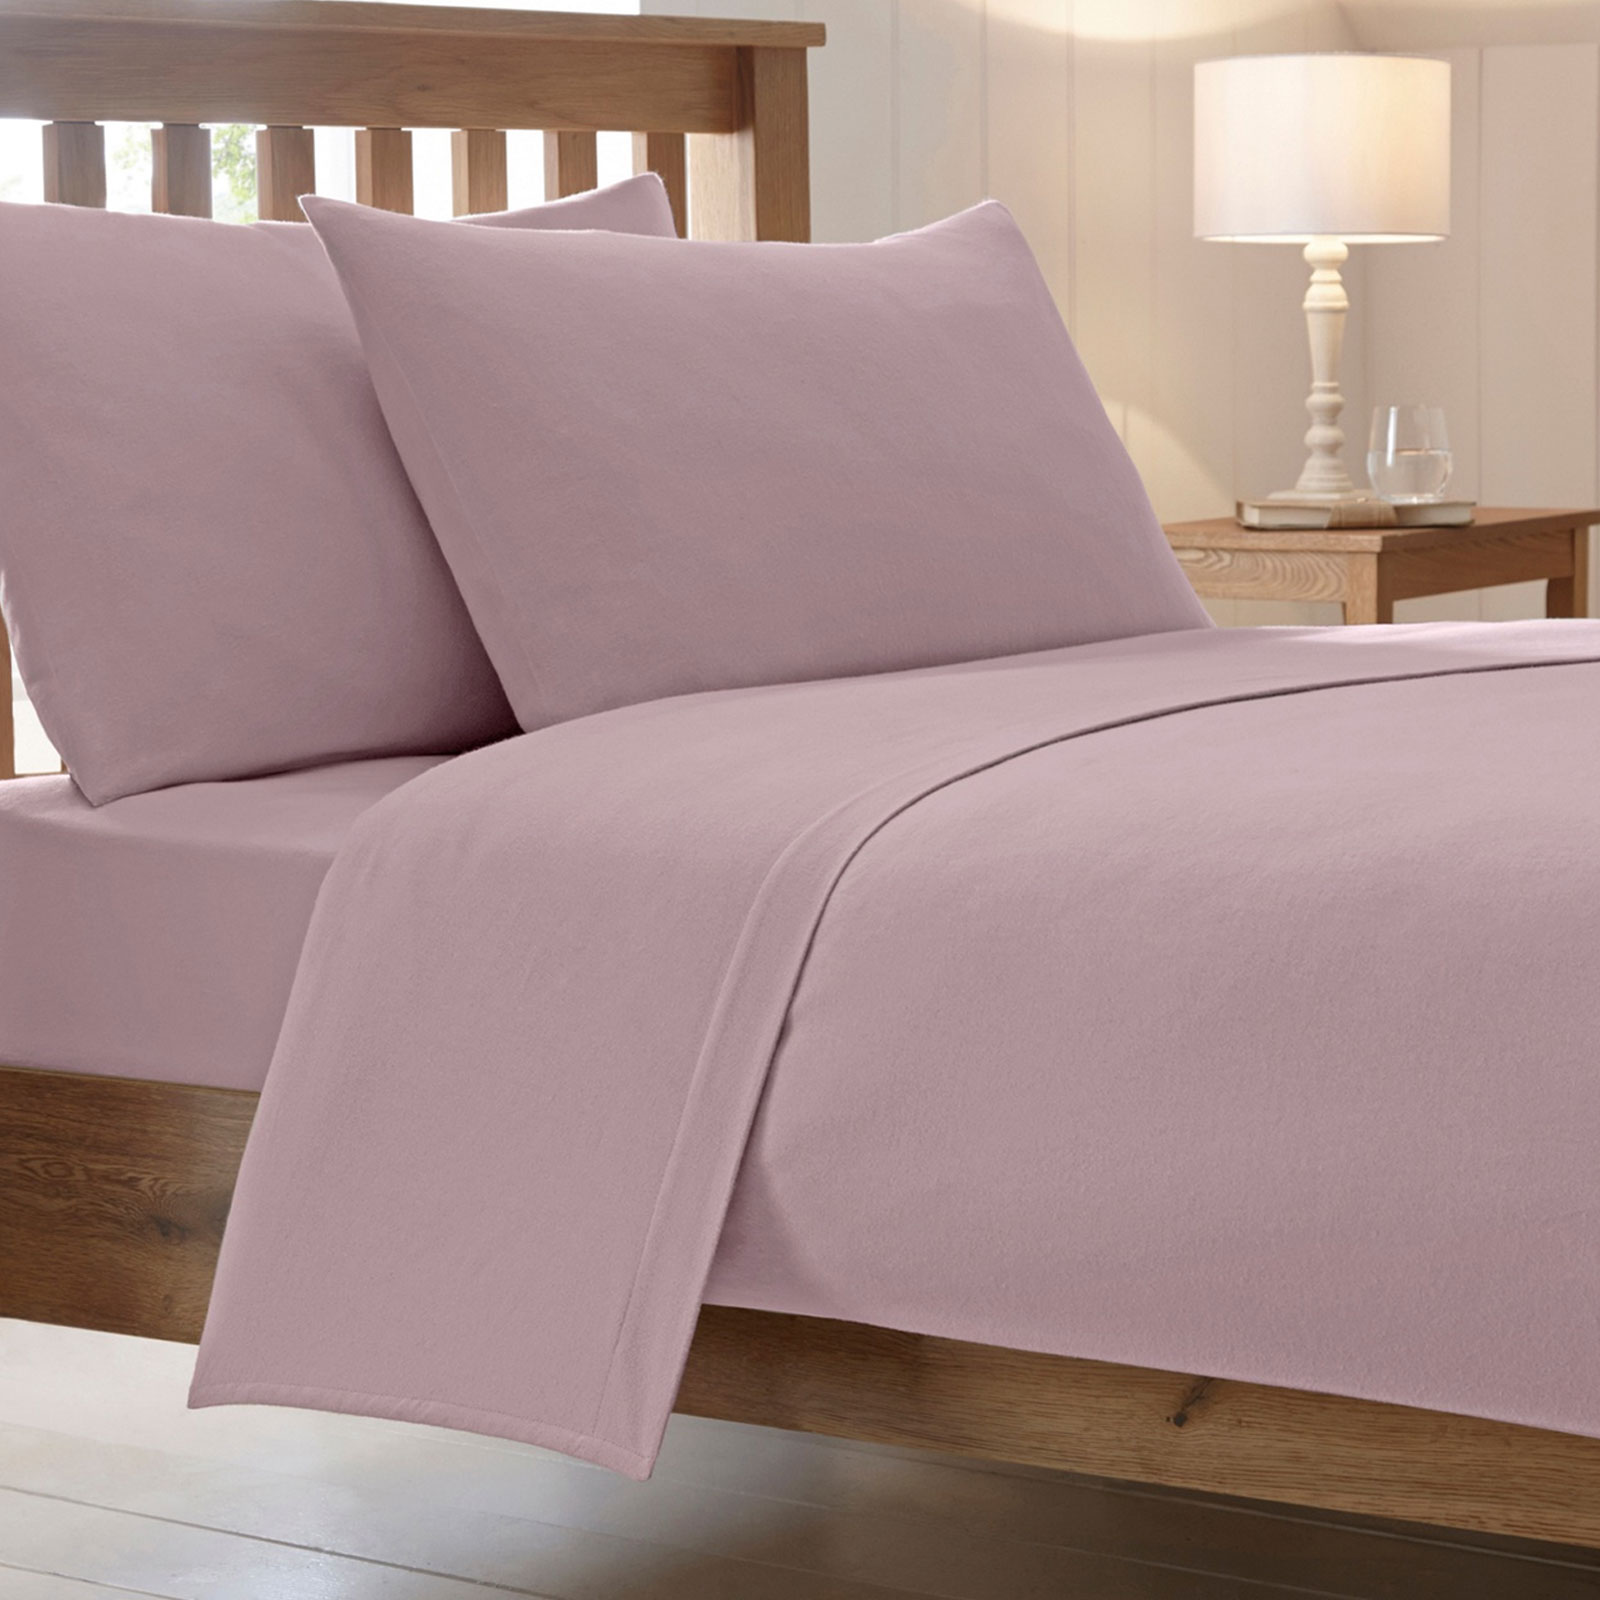 EXTRA DEEP FITTED BED SHEETS